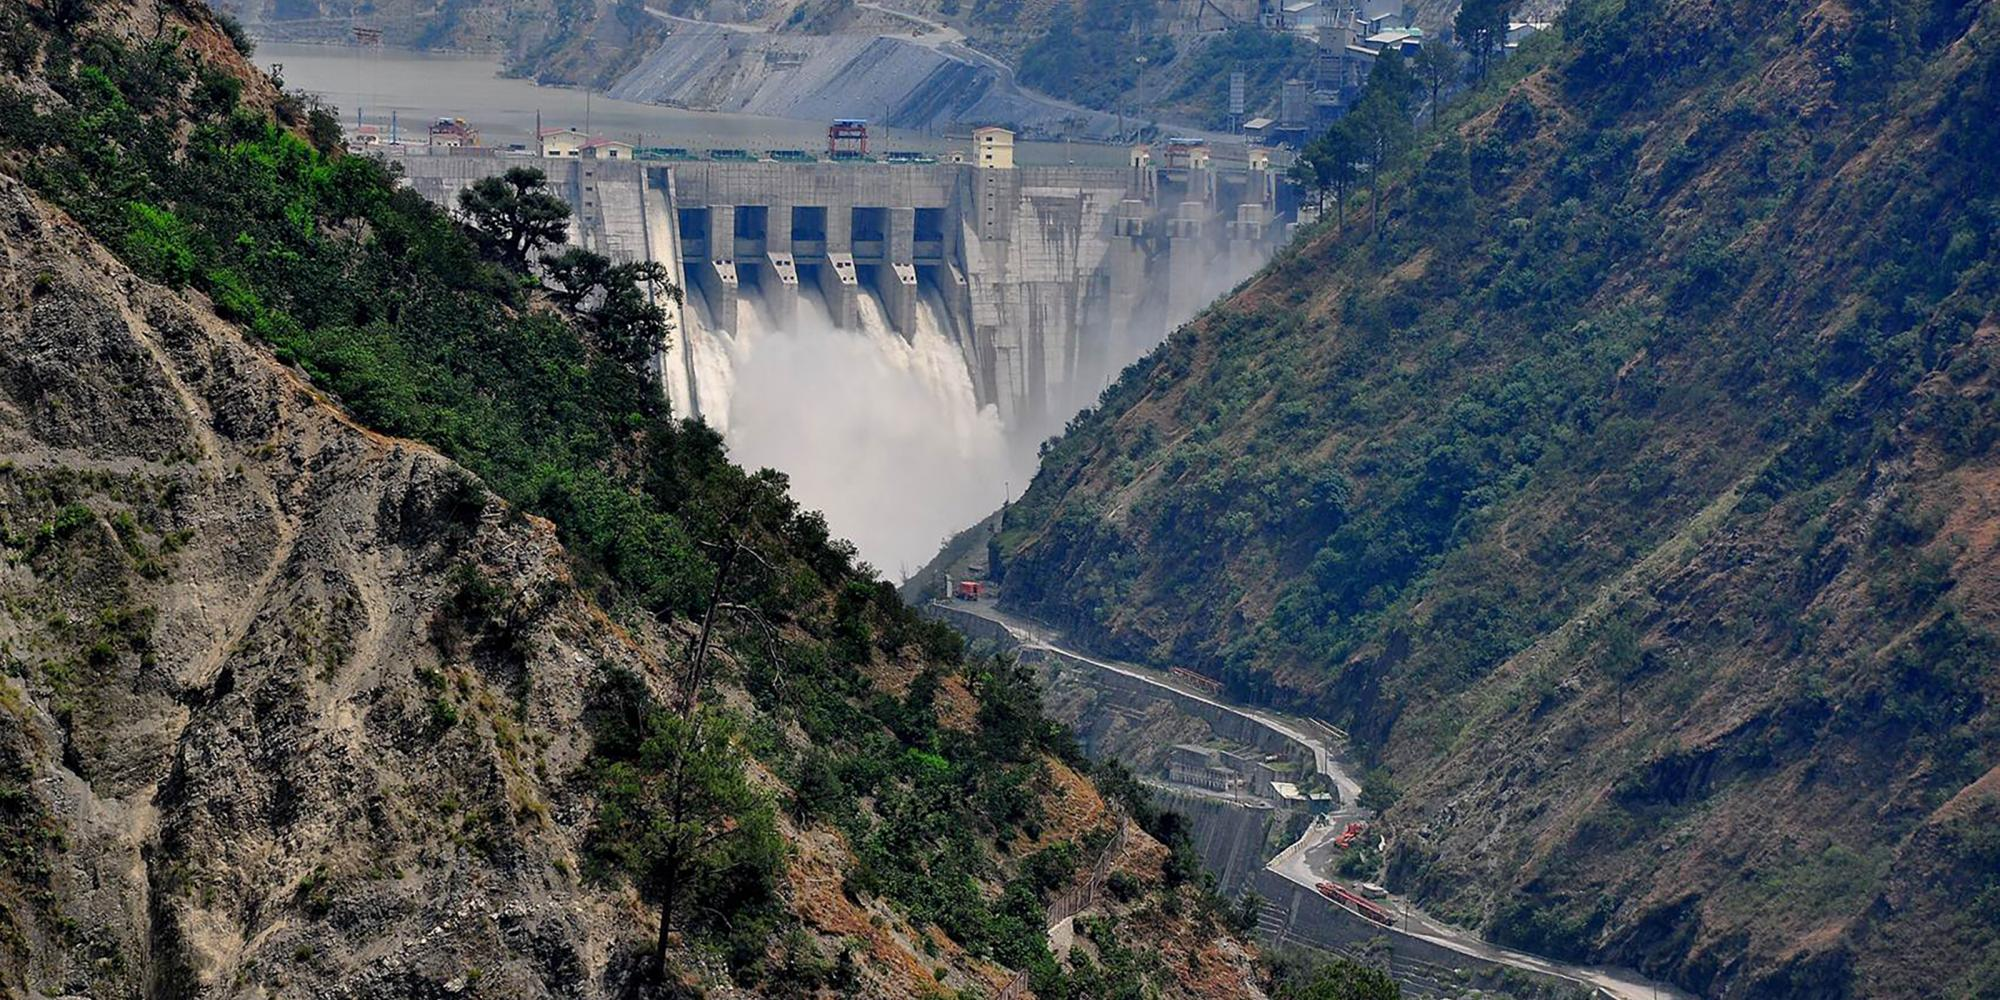 """""""The Baglihar Hydroelectric Power Project spans the Chenab River in Jammu and Kashmir, India. Under the Indus Water Treaty, the waters of the Chenab are allocated to Pakistan.""""  (Source)   Credit: ICIMOD Kathmandu"""